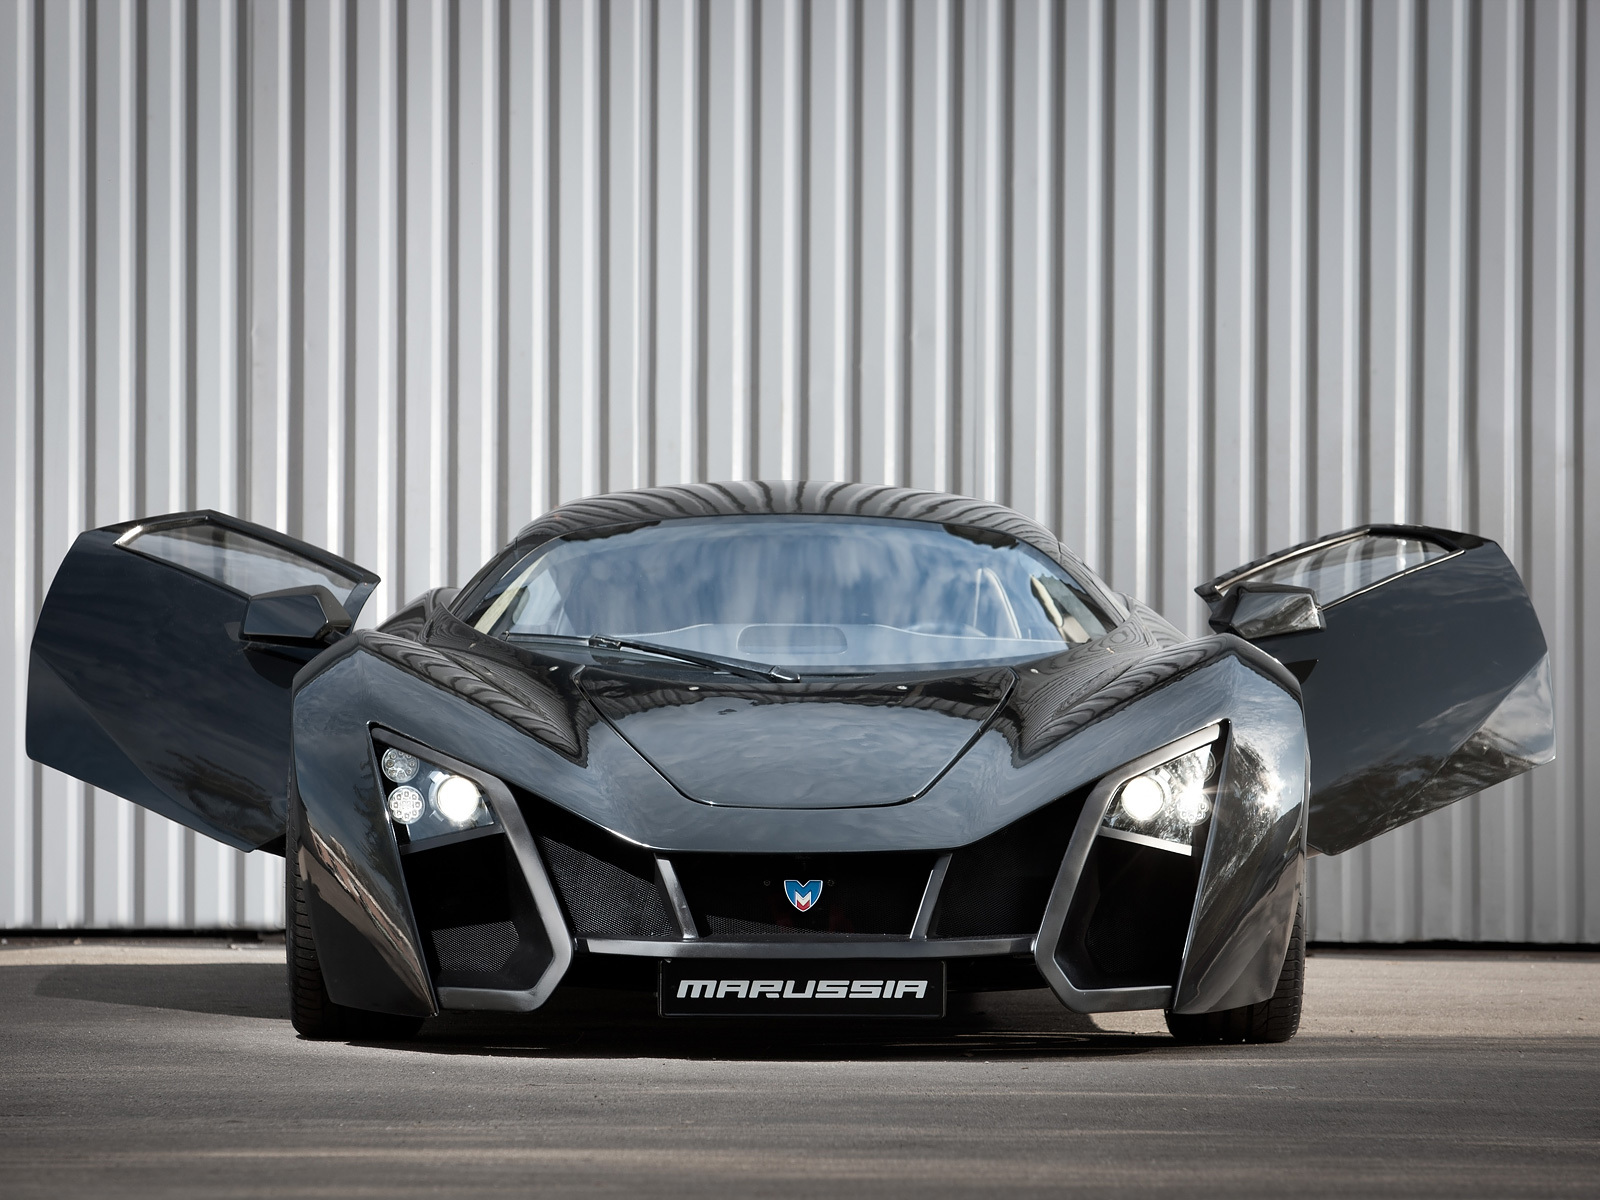 cars marussia front view HD Wallpaper